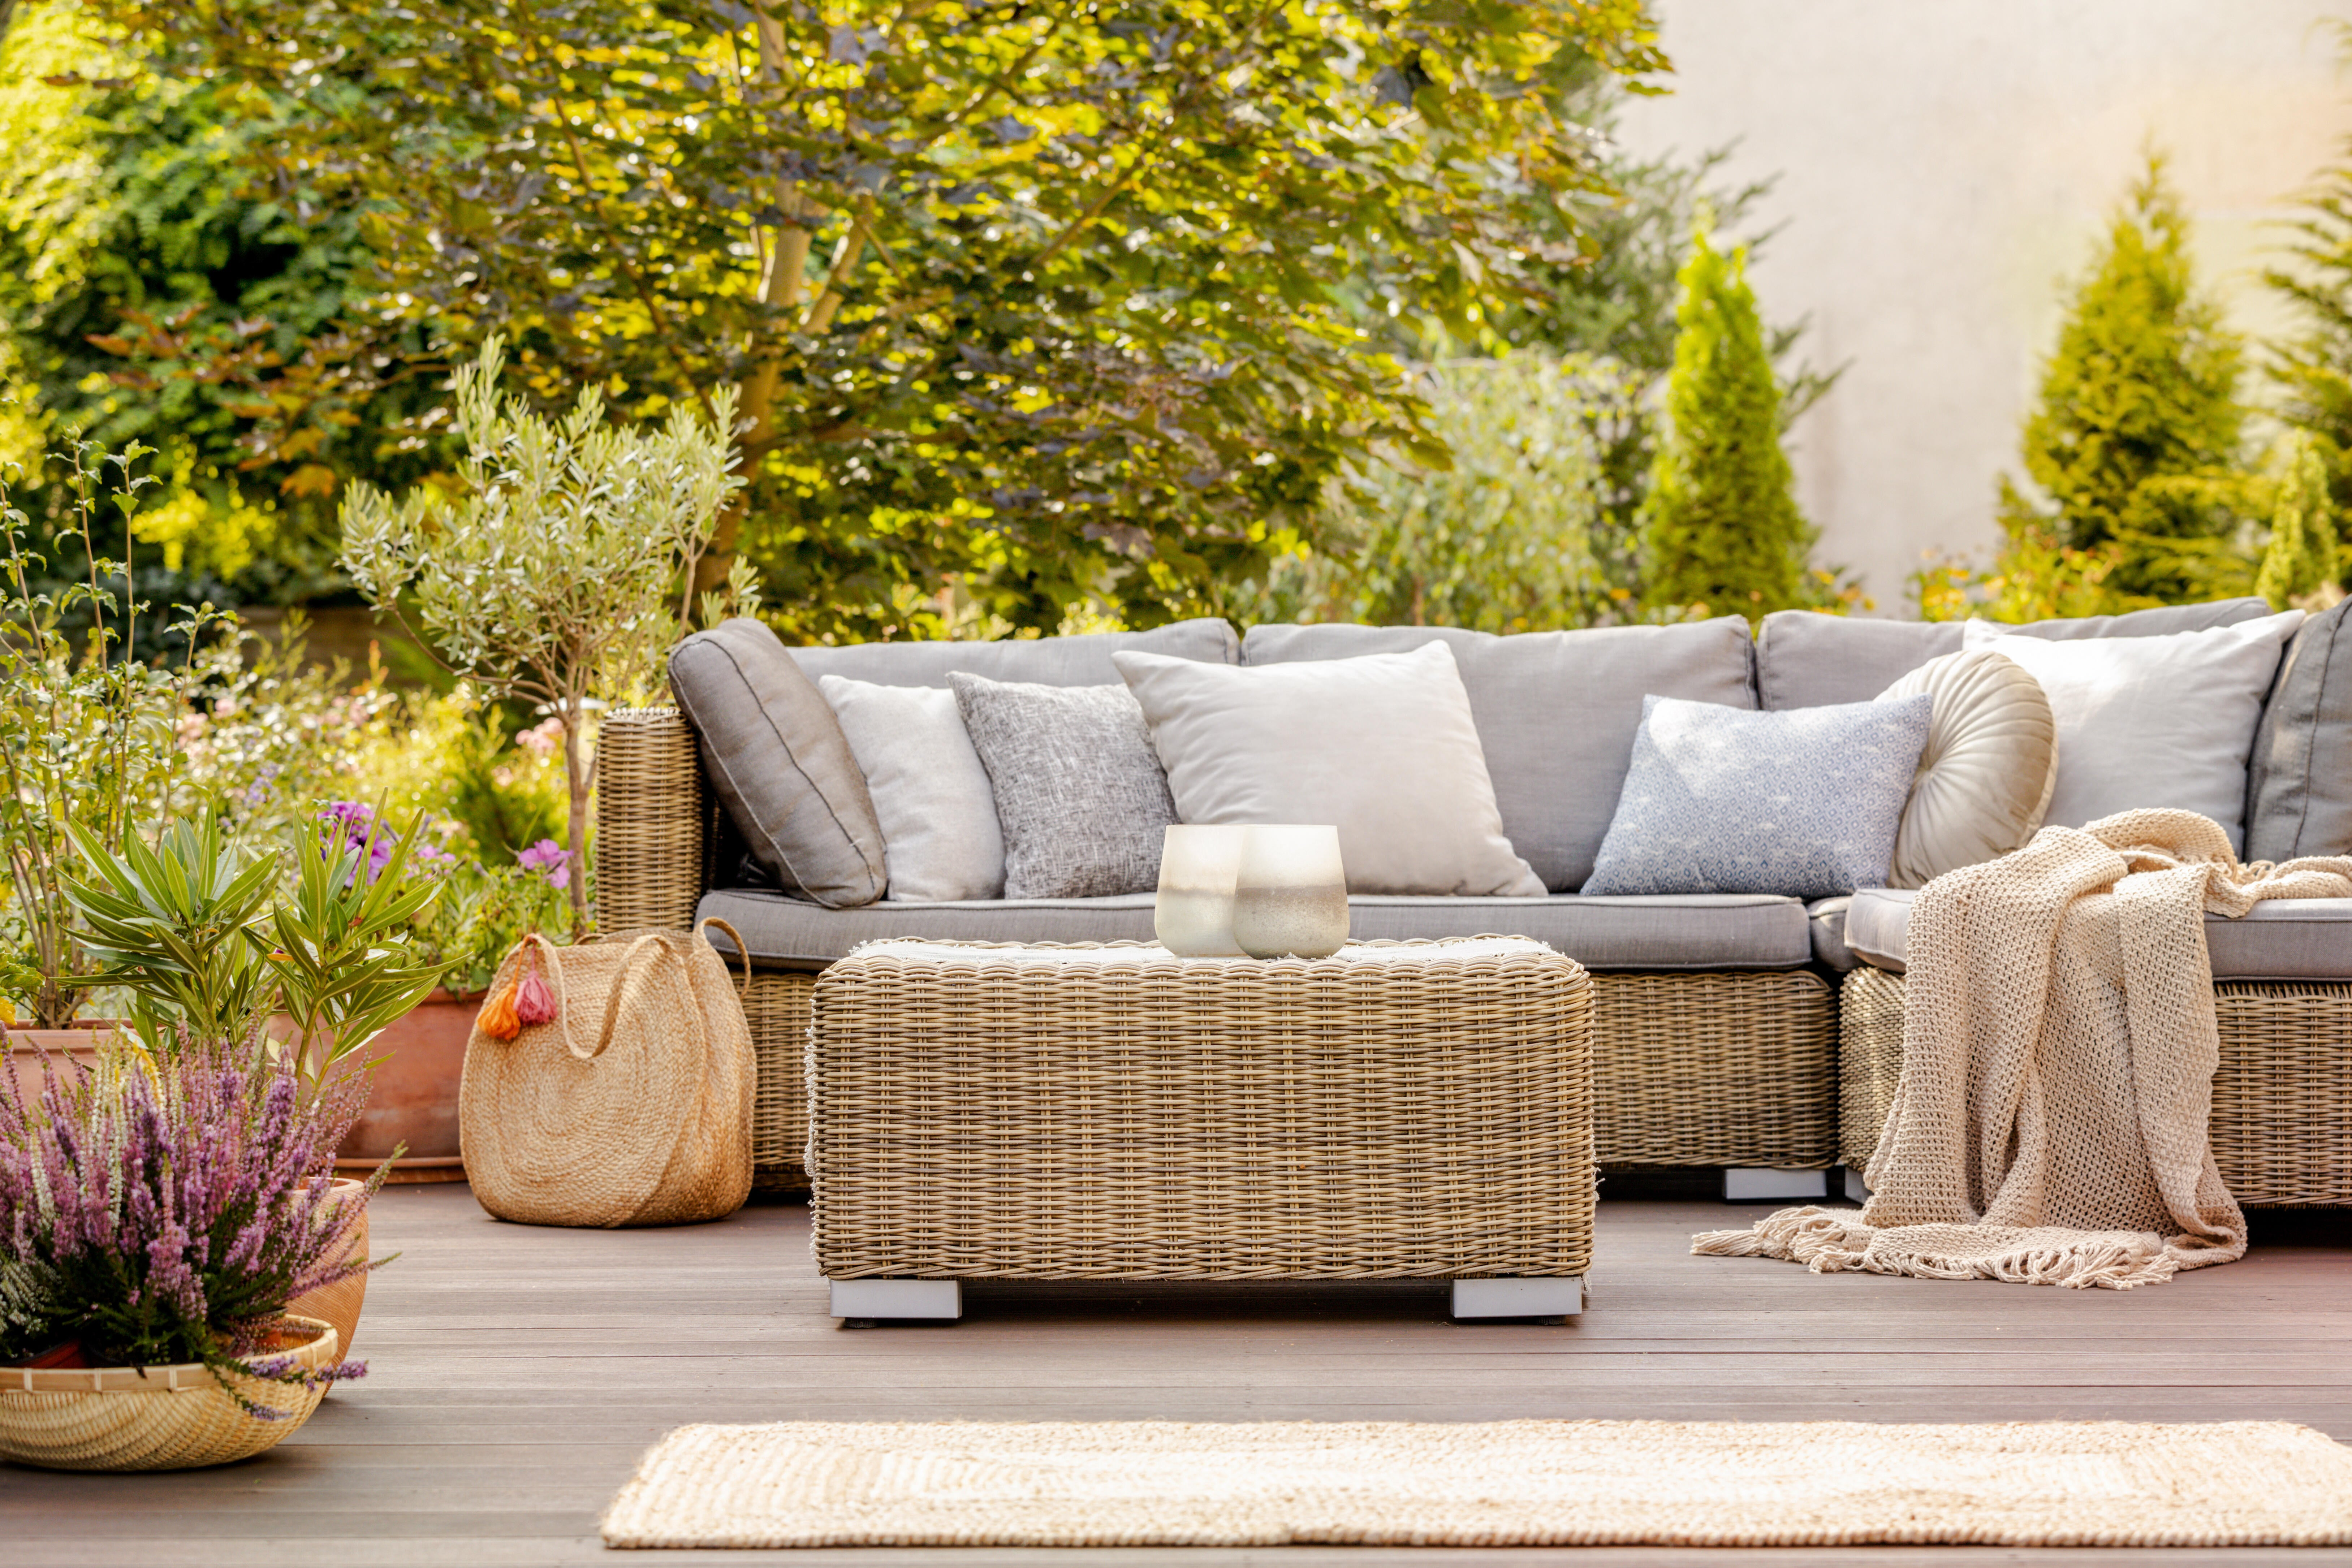 An outdoor patio furniture set is surrounded by plants and trees.